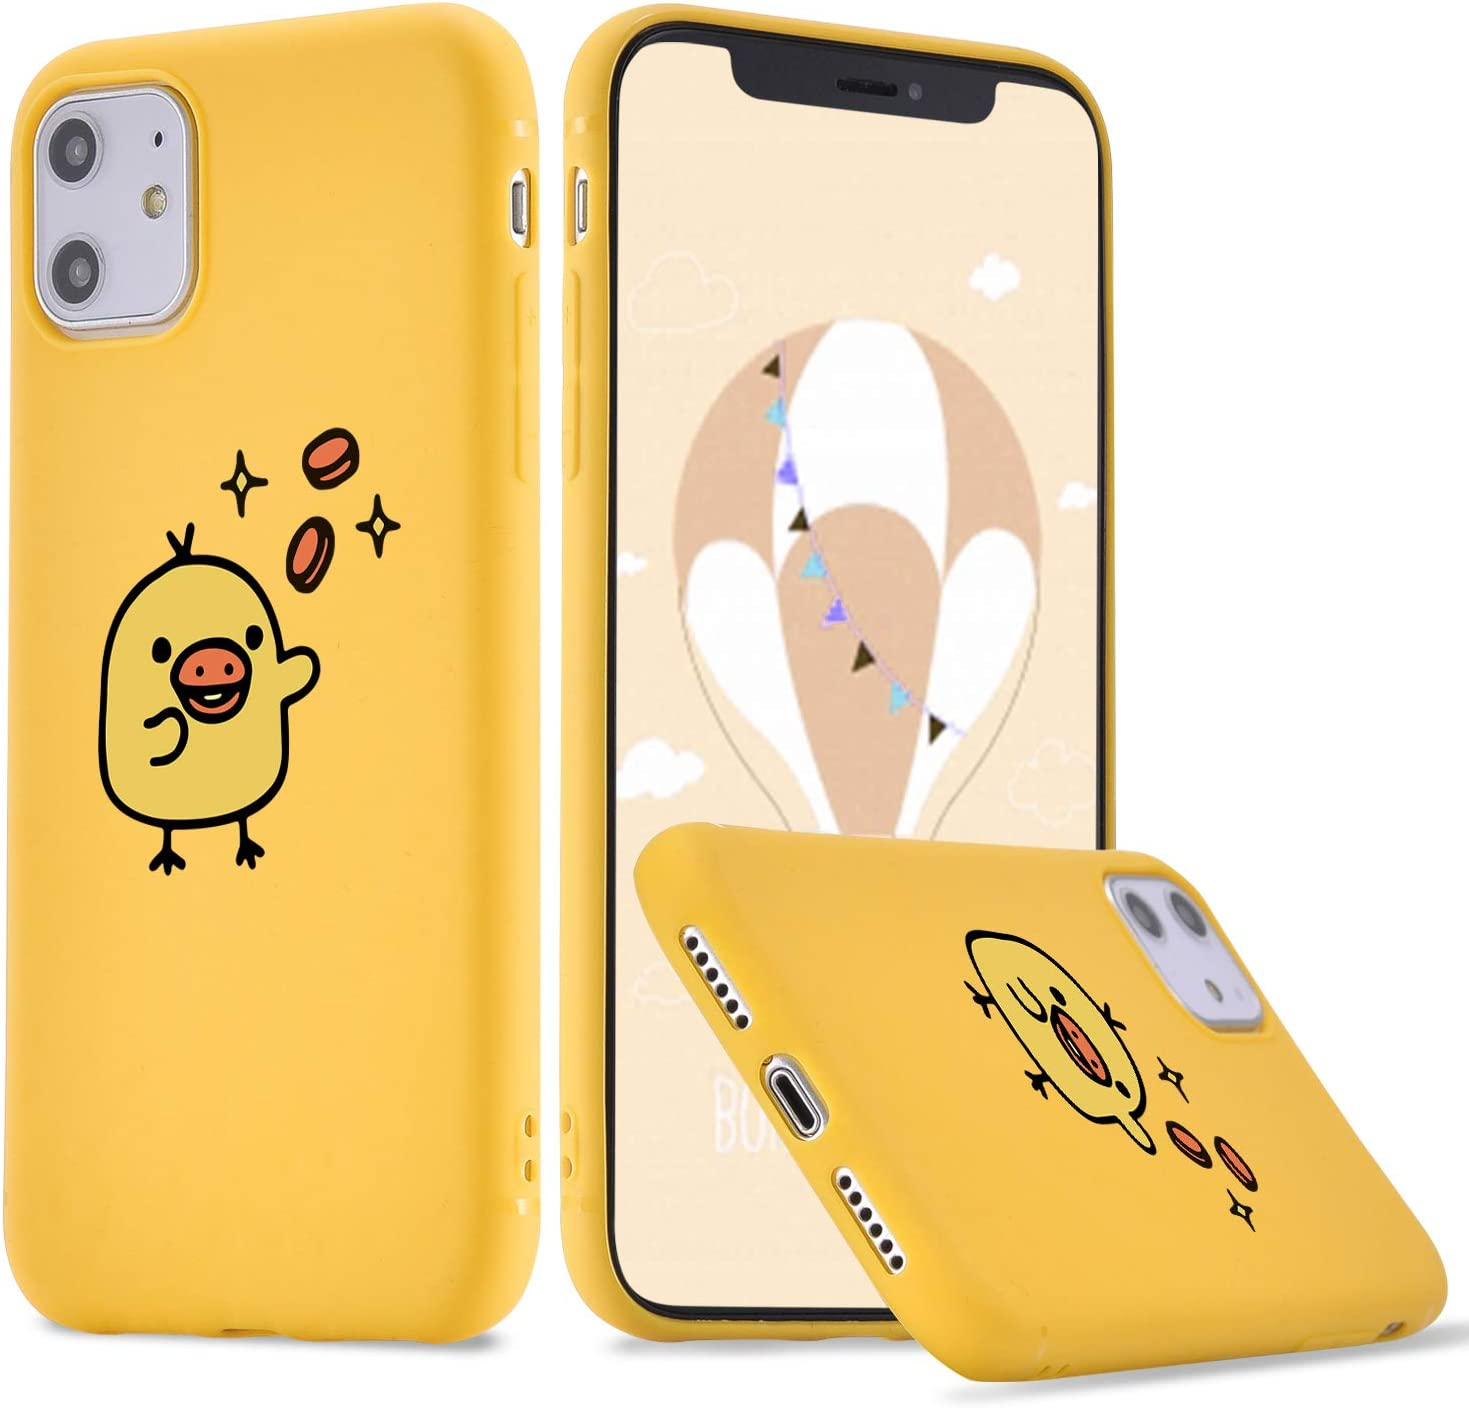 LuGeKe Cartoon Birdie Phone Case for iPhoneXR,Cute Birdie Patterned Case Cover,HardPCBackwithTPUBumper Anti-Stratch Bumper Protective Cute Girls Phonecase(Colorful (Yellow Birdie)